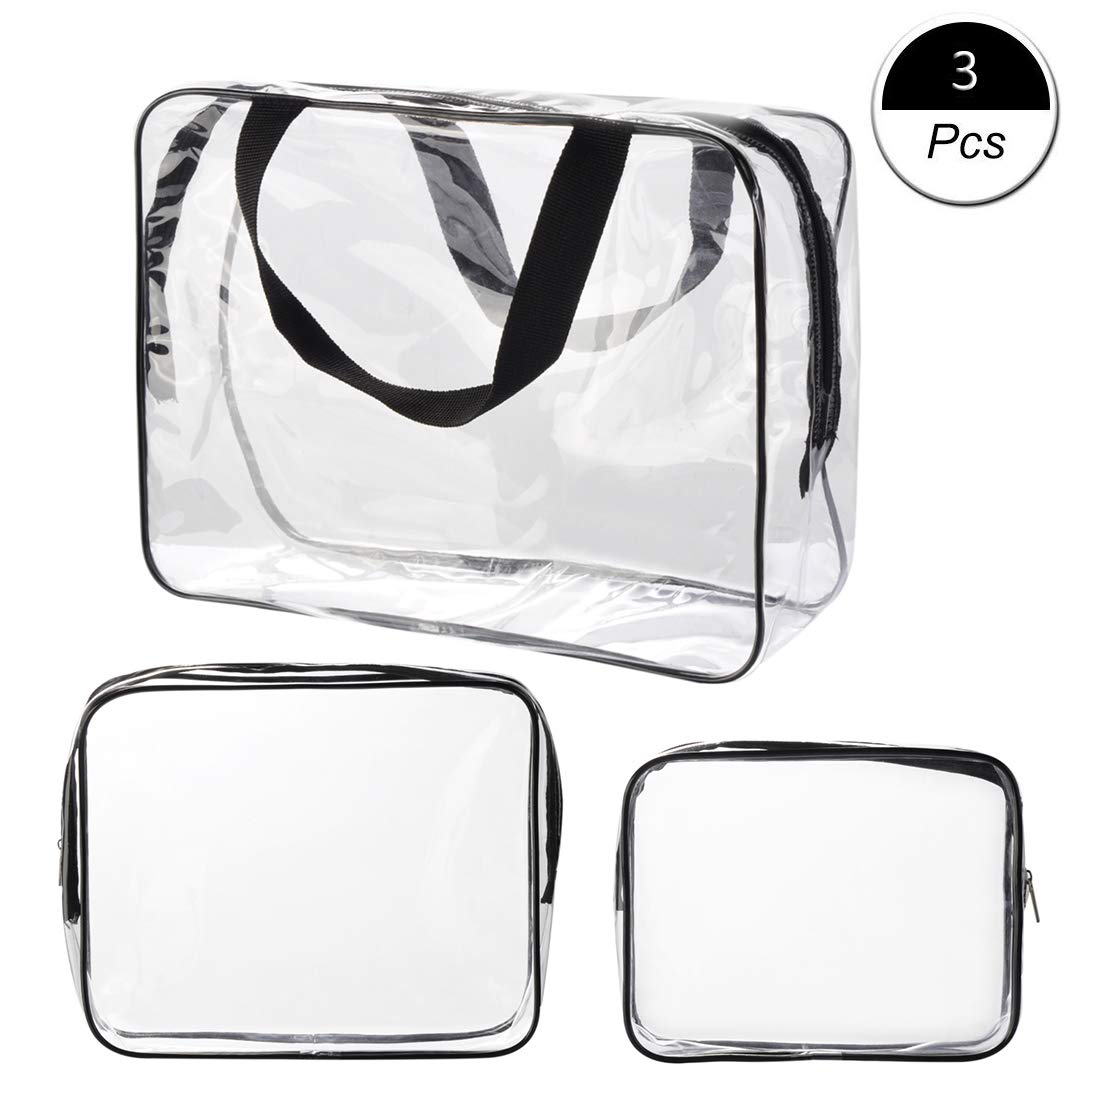 Waterproof Makeup Bag Clear Travel Toiletry Bags PVC Organizer Case for Men & Women 3 Pack